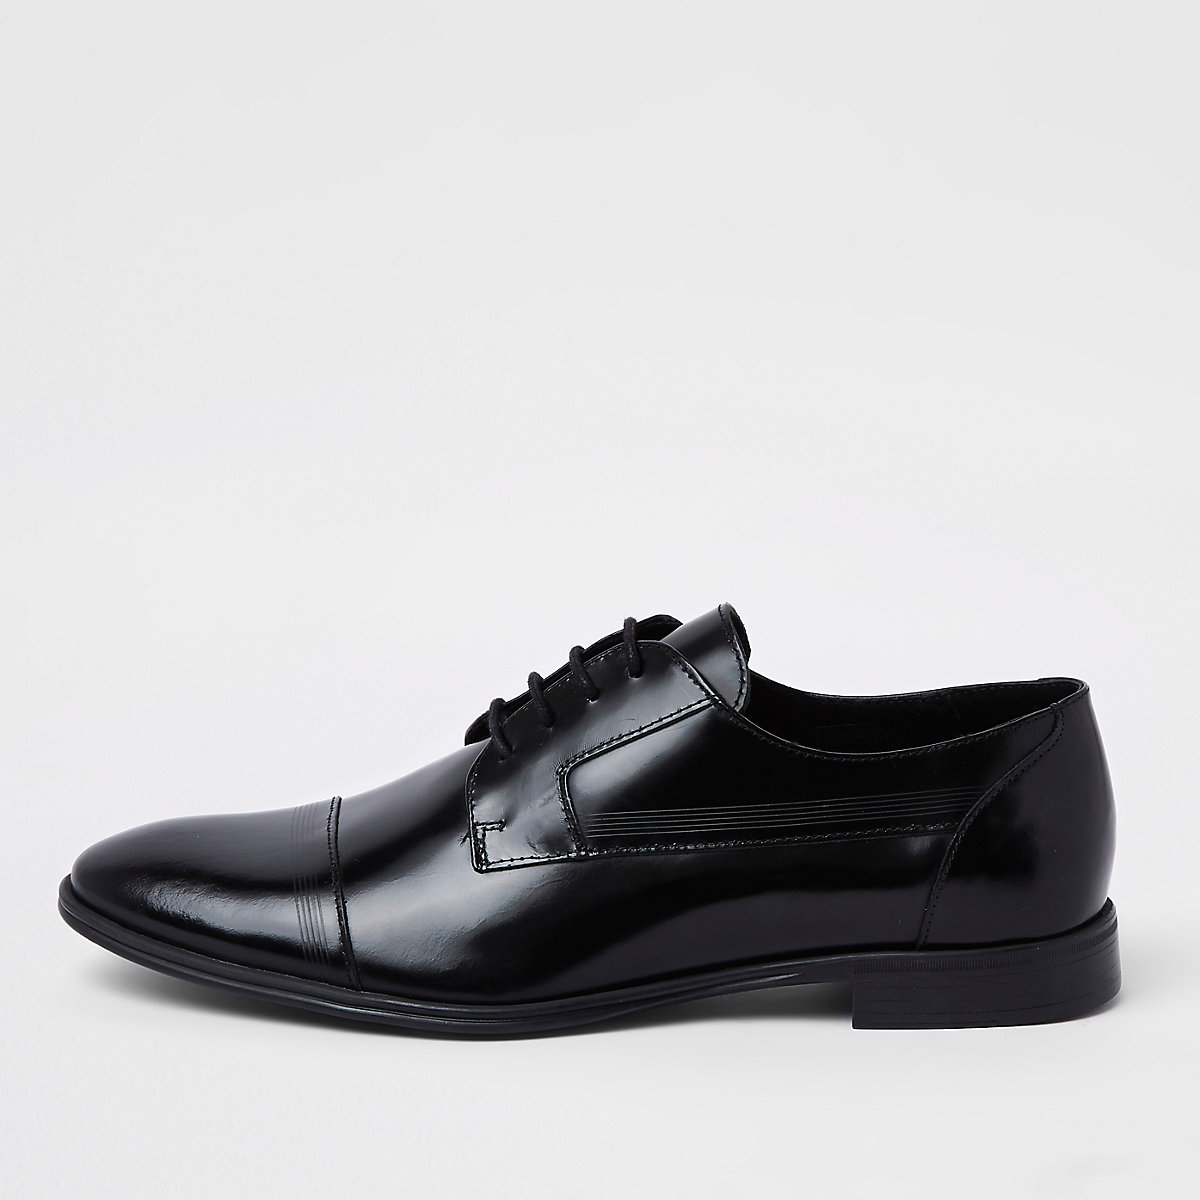 Black leather lace-up derby shoes